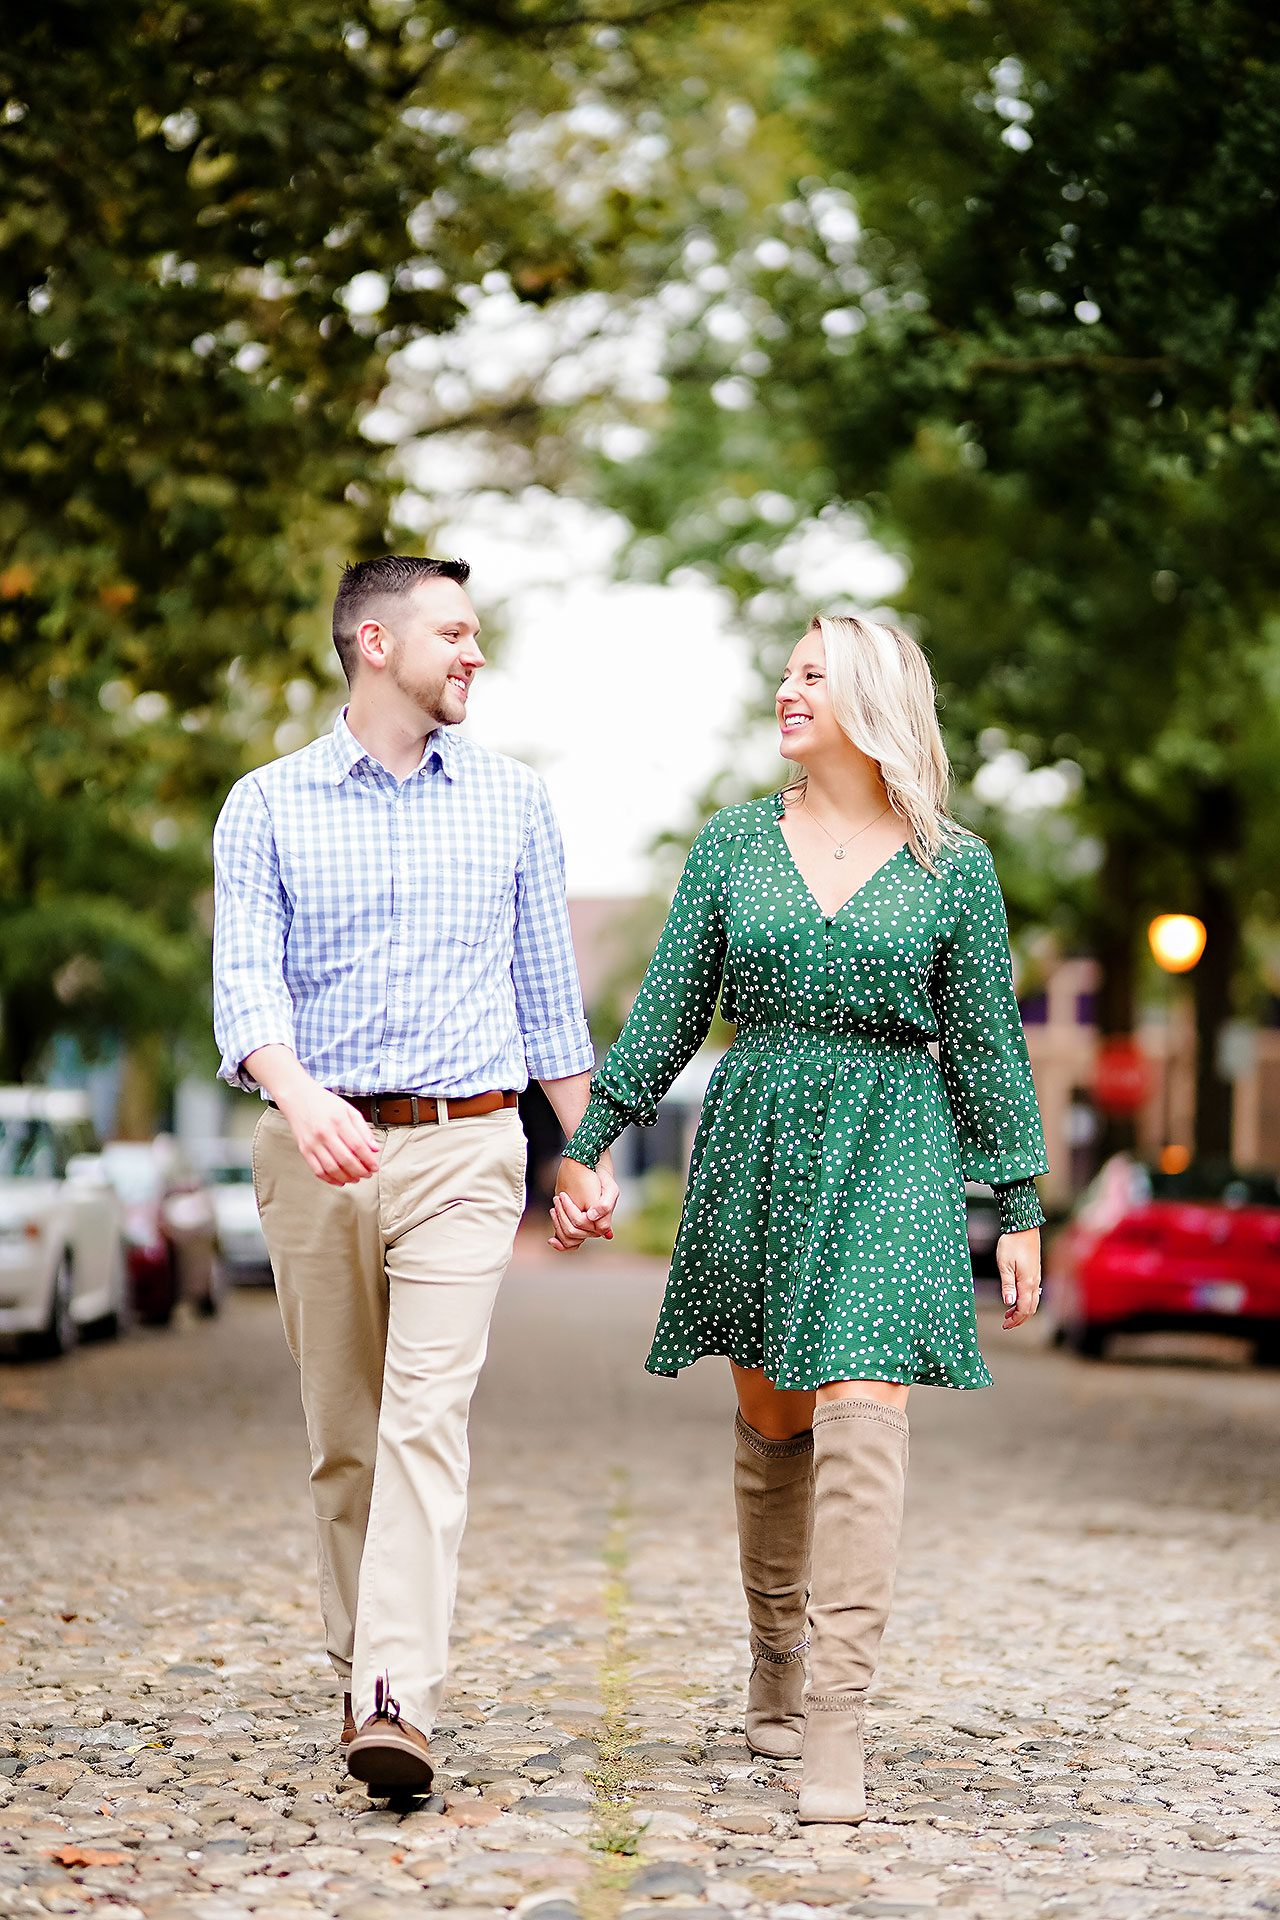 Kristen Jonny Indianapolis Downtown Engagement Session 077